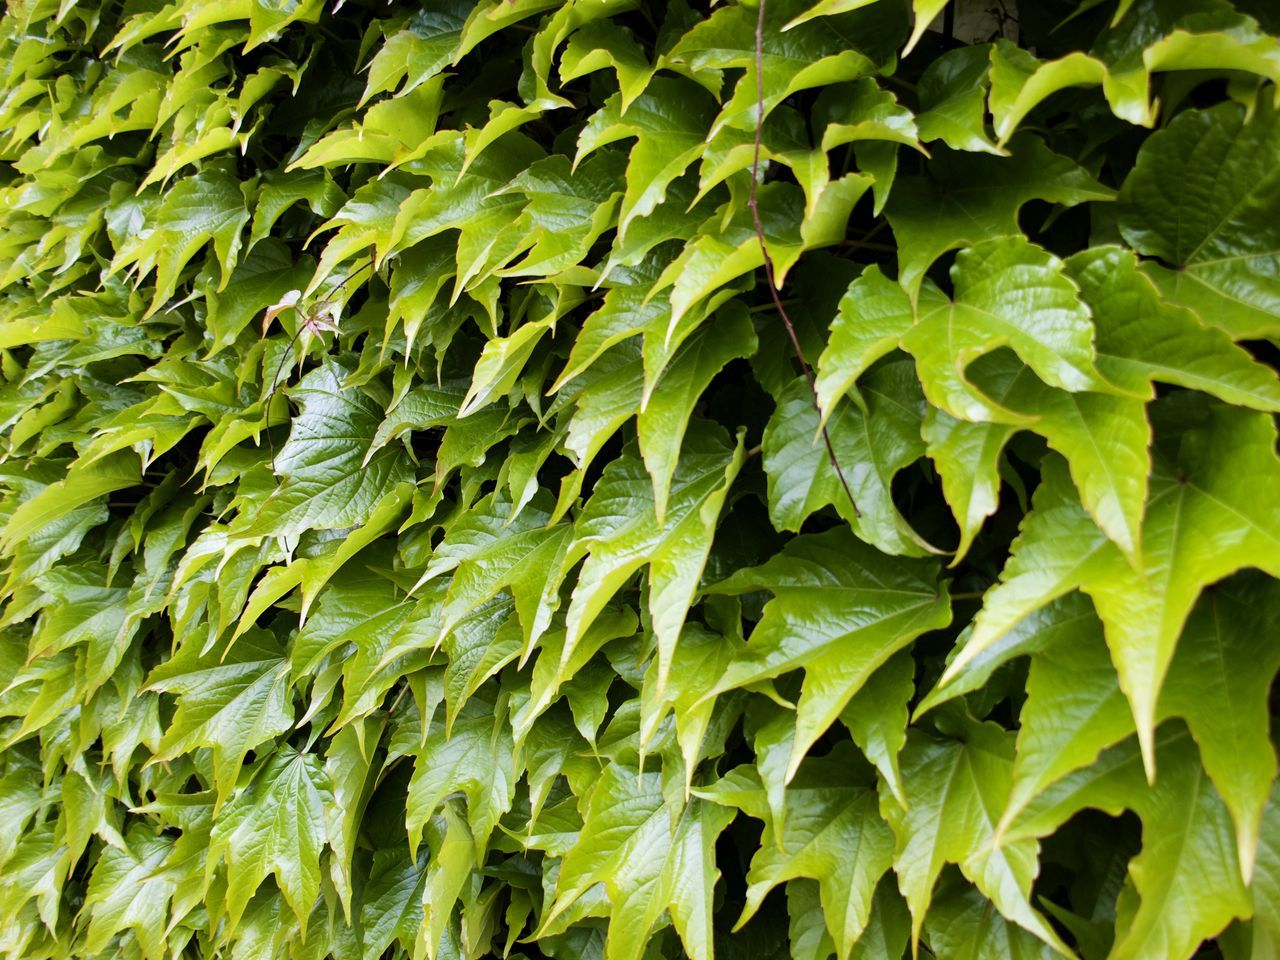 Backgrounds Close-up Day Full Frame Green Color Green Wall Growth Hedge Leaf Nature No People Outdoors Plant